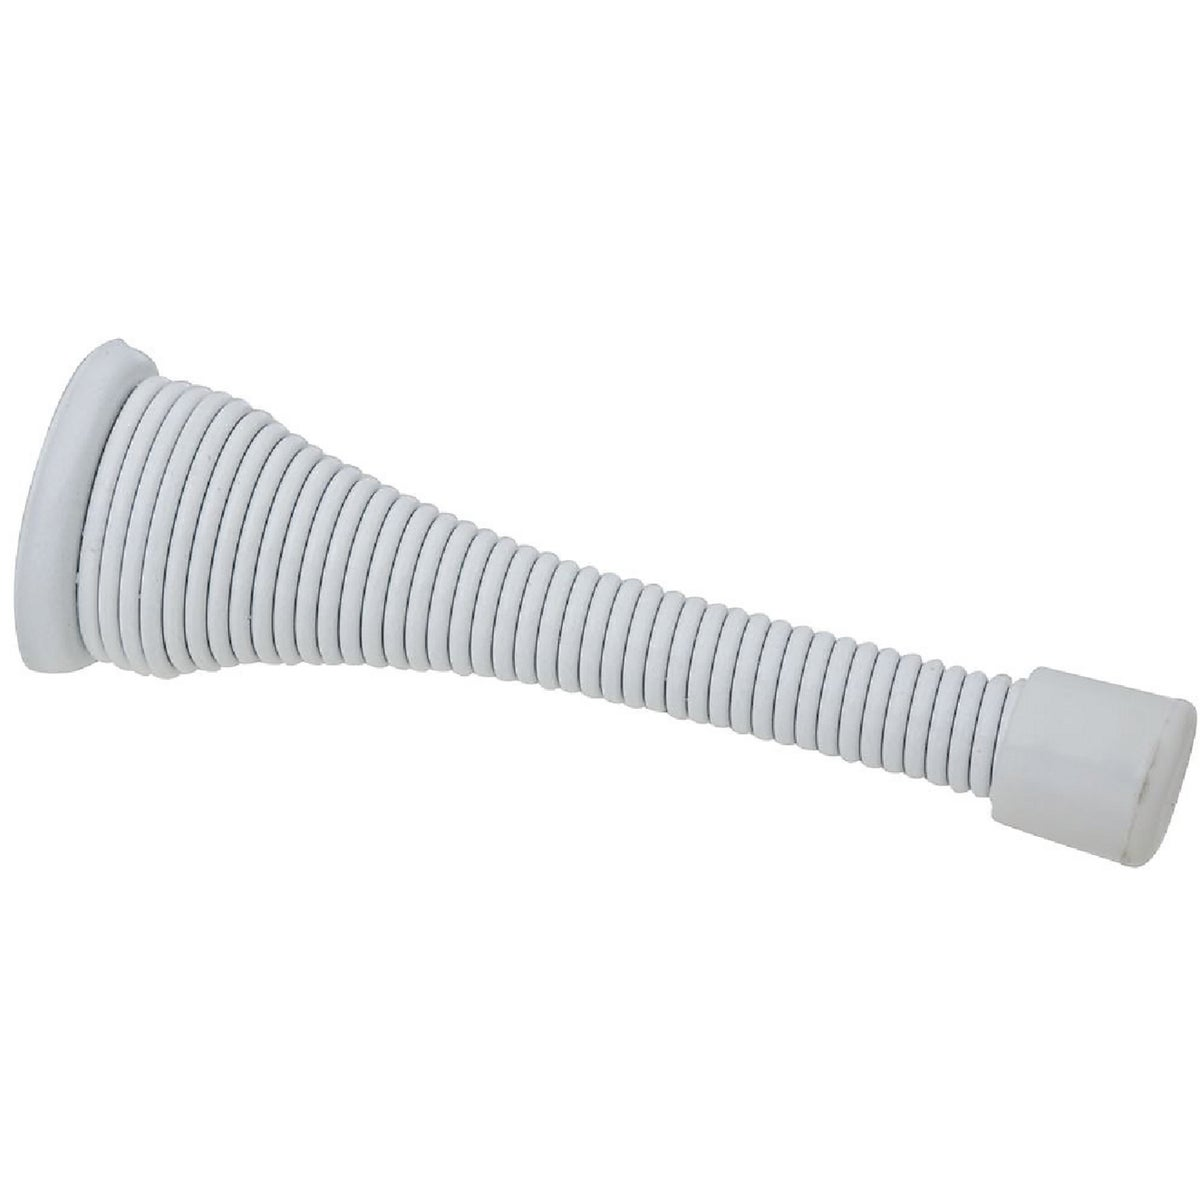 WHT SPRING DOOR STOP - N265264 by National Mfg Co